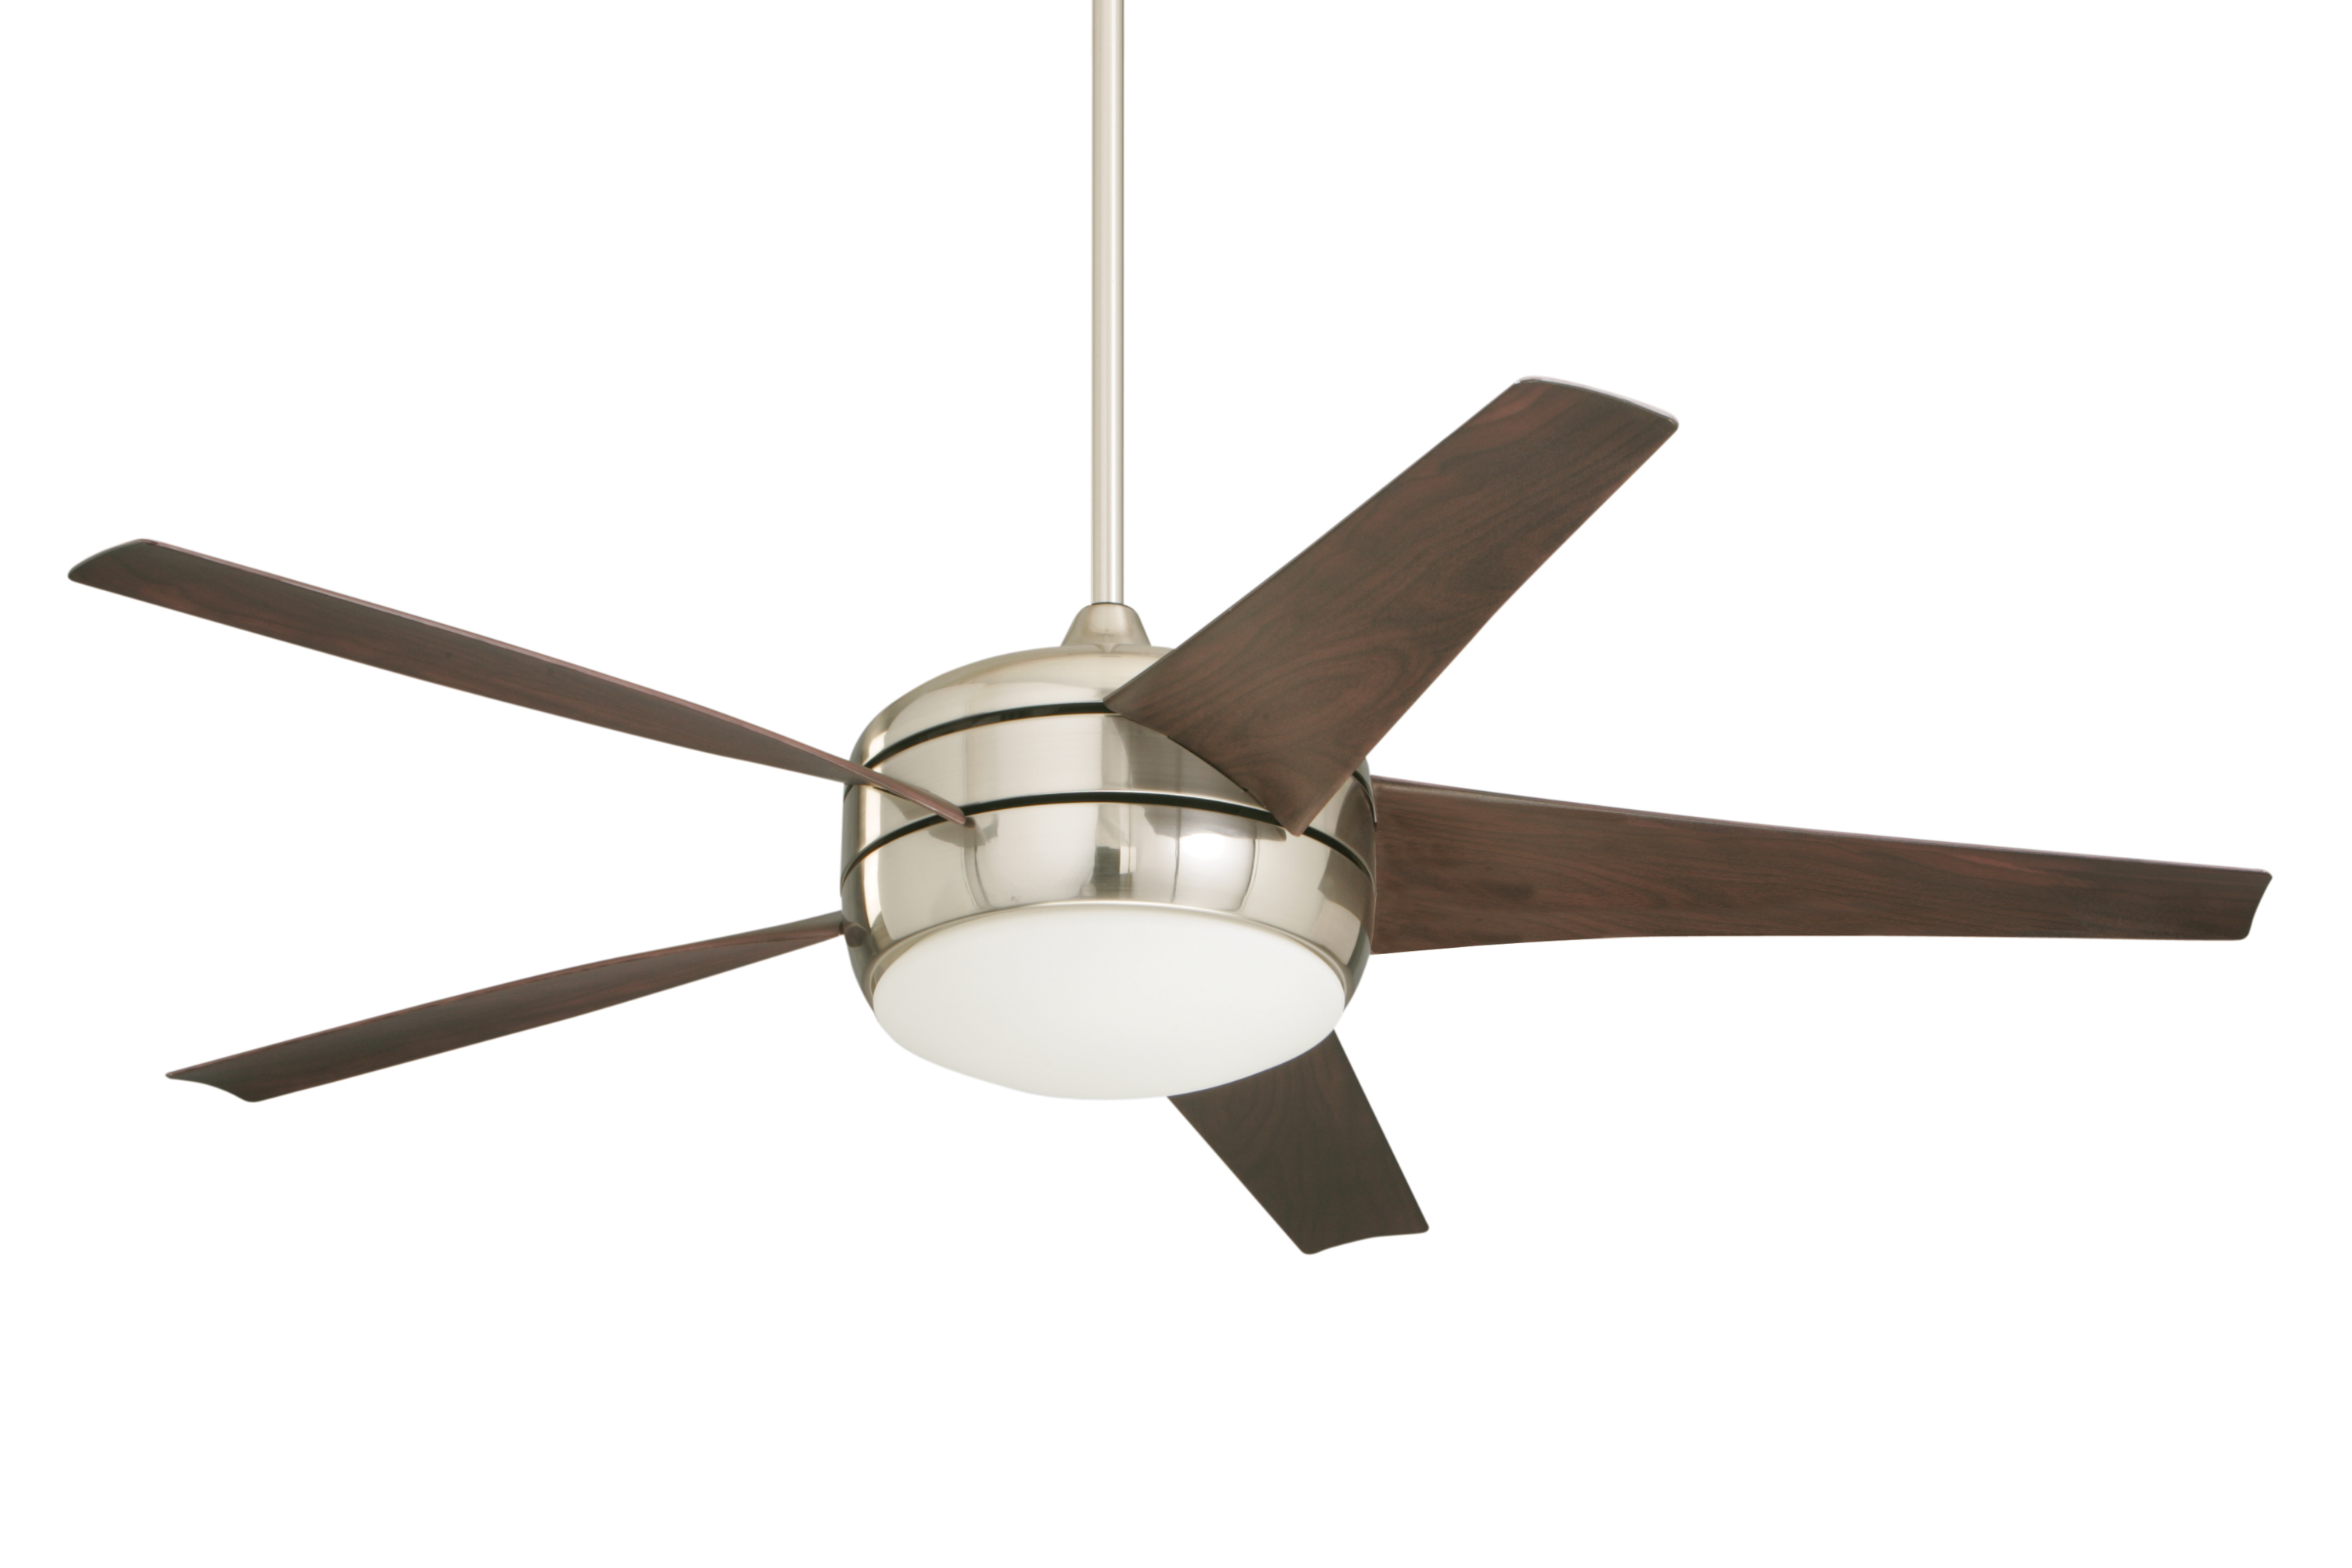 Ceiling Fans With Lights : Contemporary ceiling fans with light homesfeed